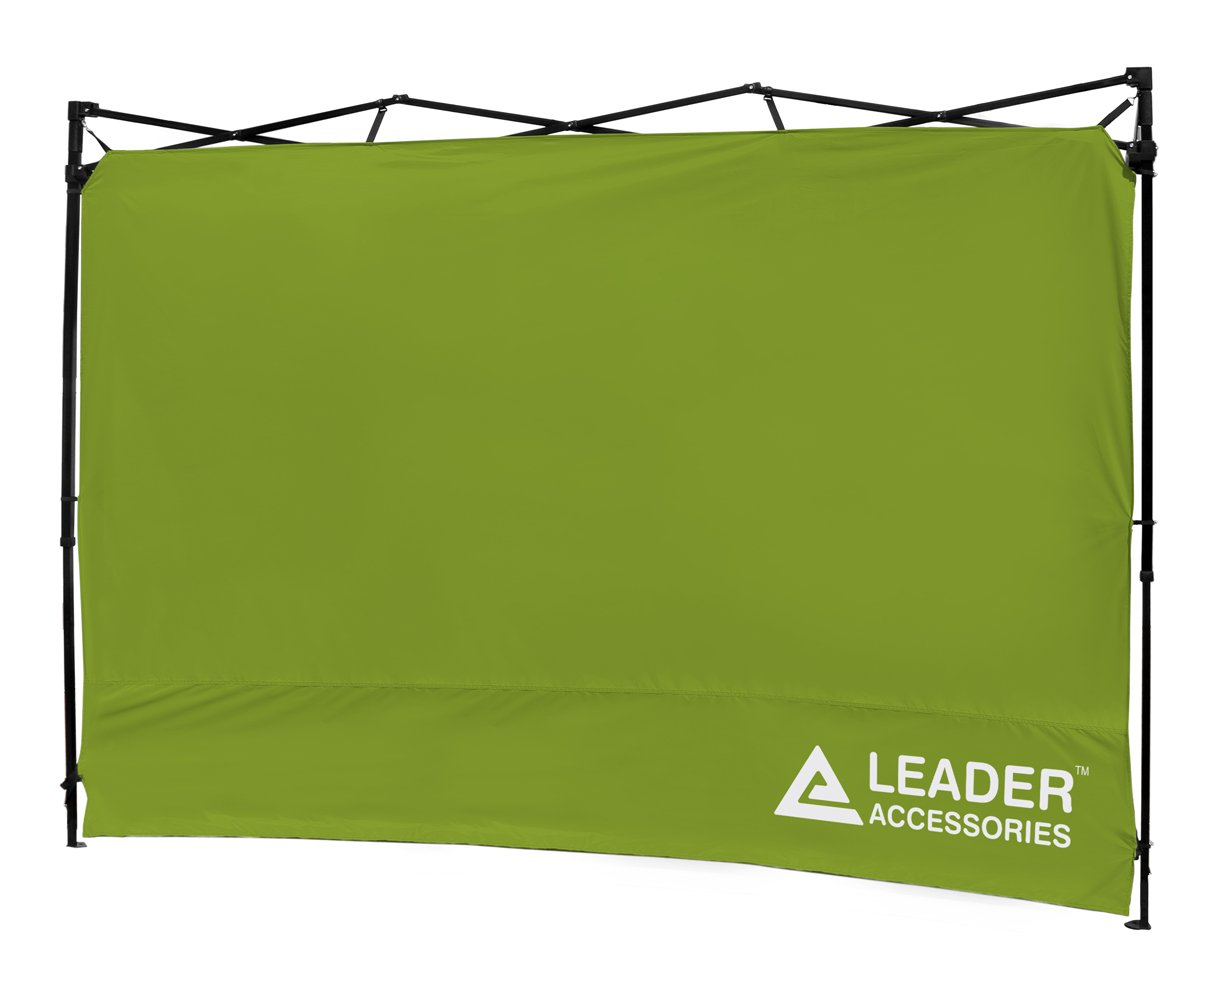 Leader Accessories 10 x 10 ft Instant Canopy Side Wall Canopy Sun Wall (Green) by Leader Accessories